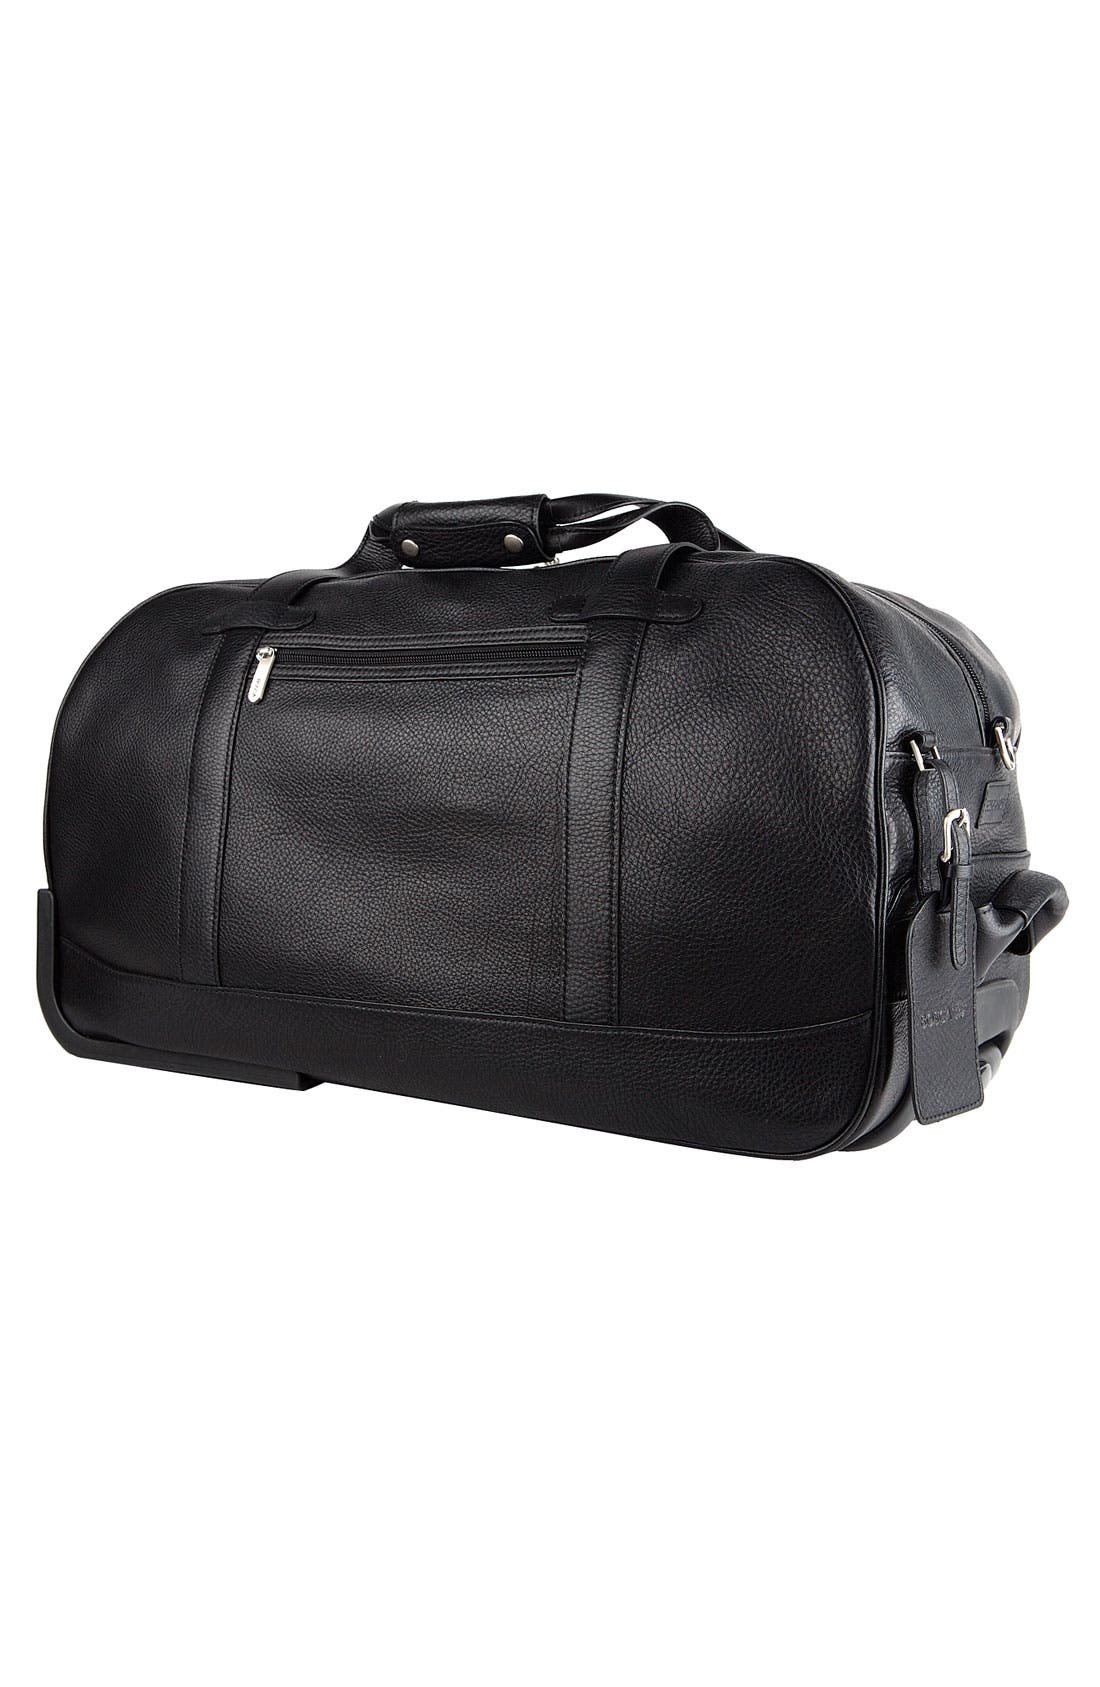 Alternate Image 2  - Bosca 'Tribeca Collection' Wheeled Duffel Bag